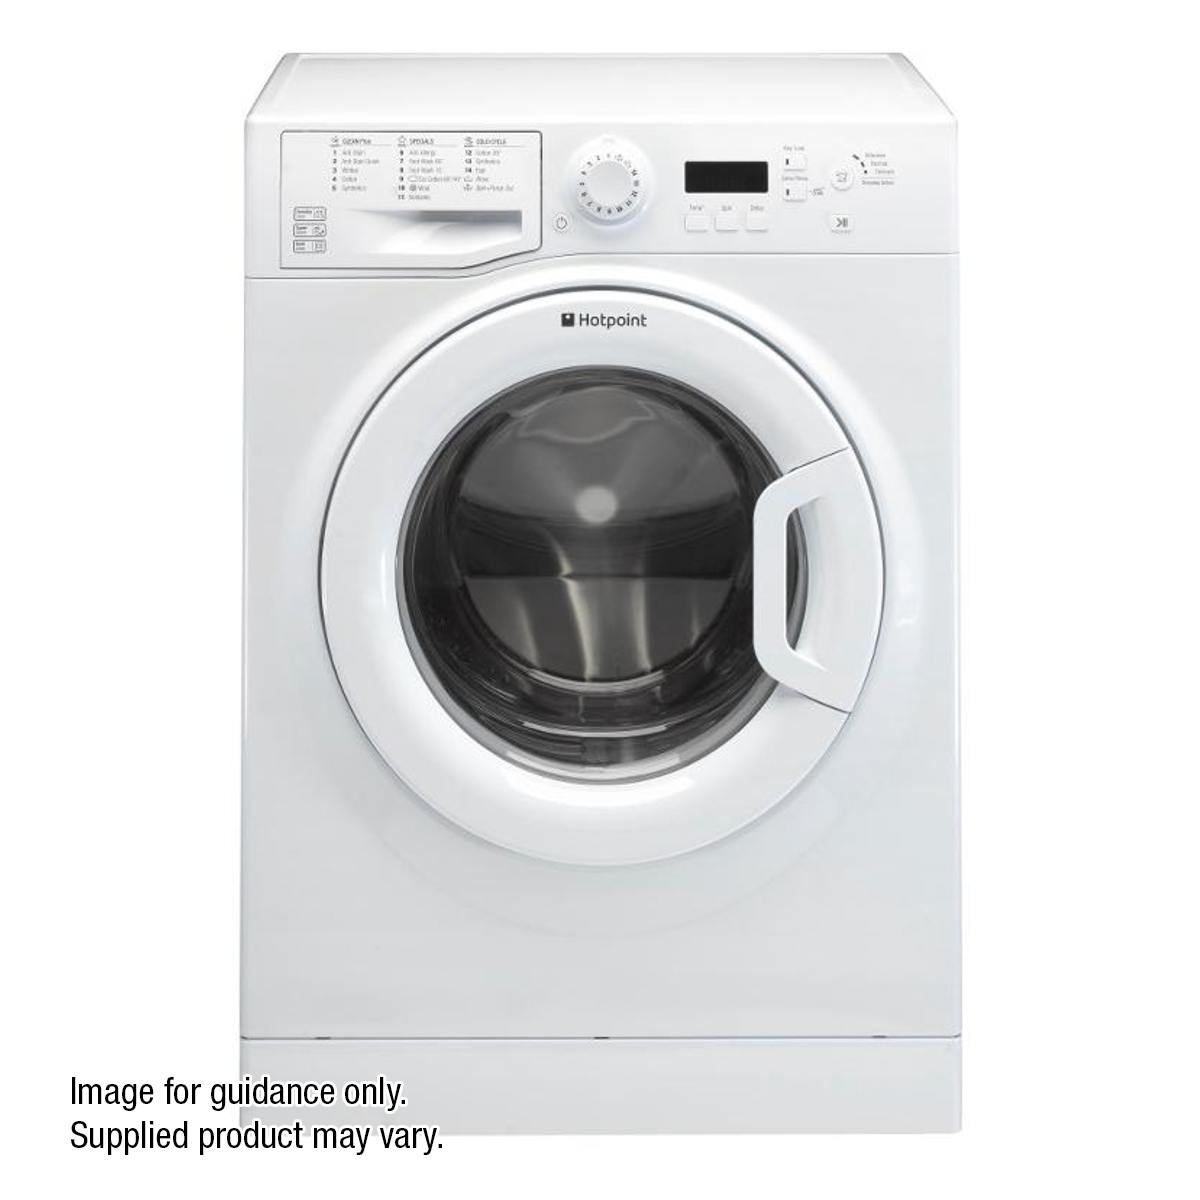 REFURBISHED Washing Machine with 1400rpm Spin Speed